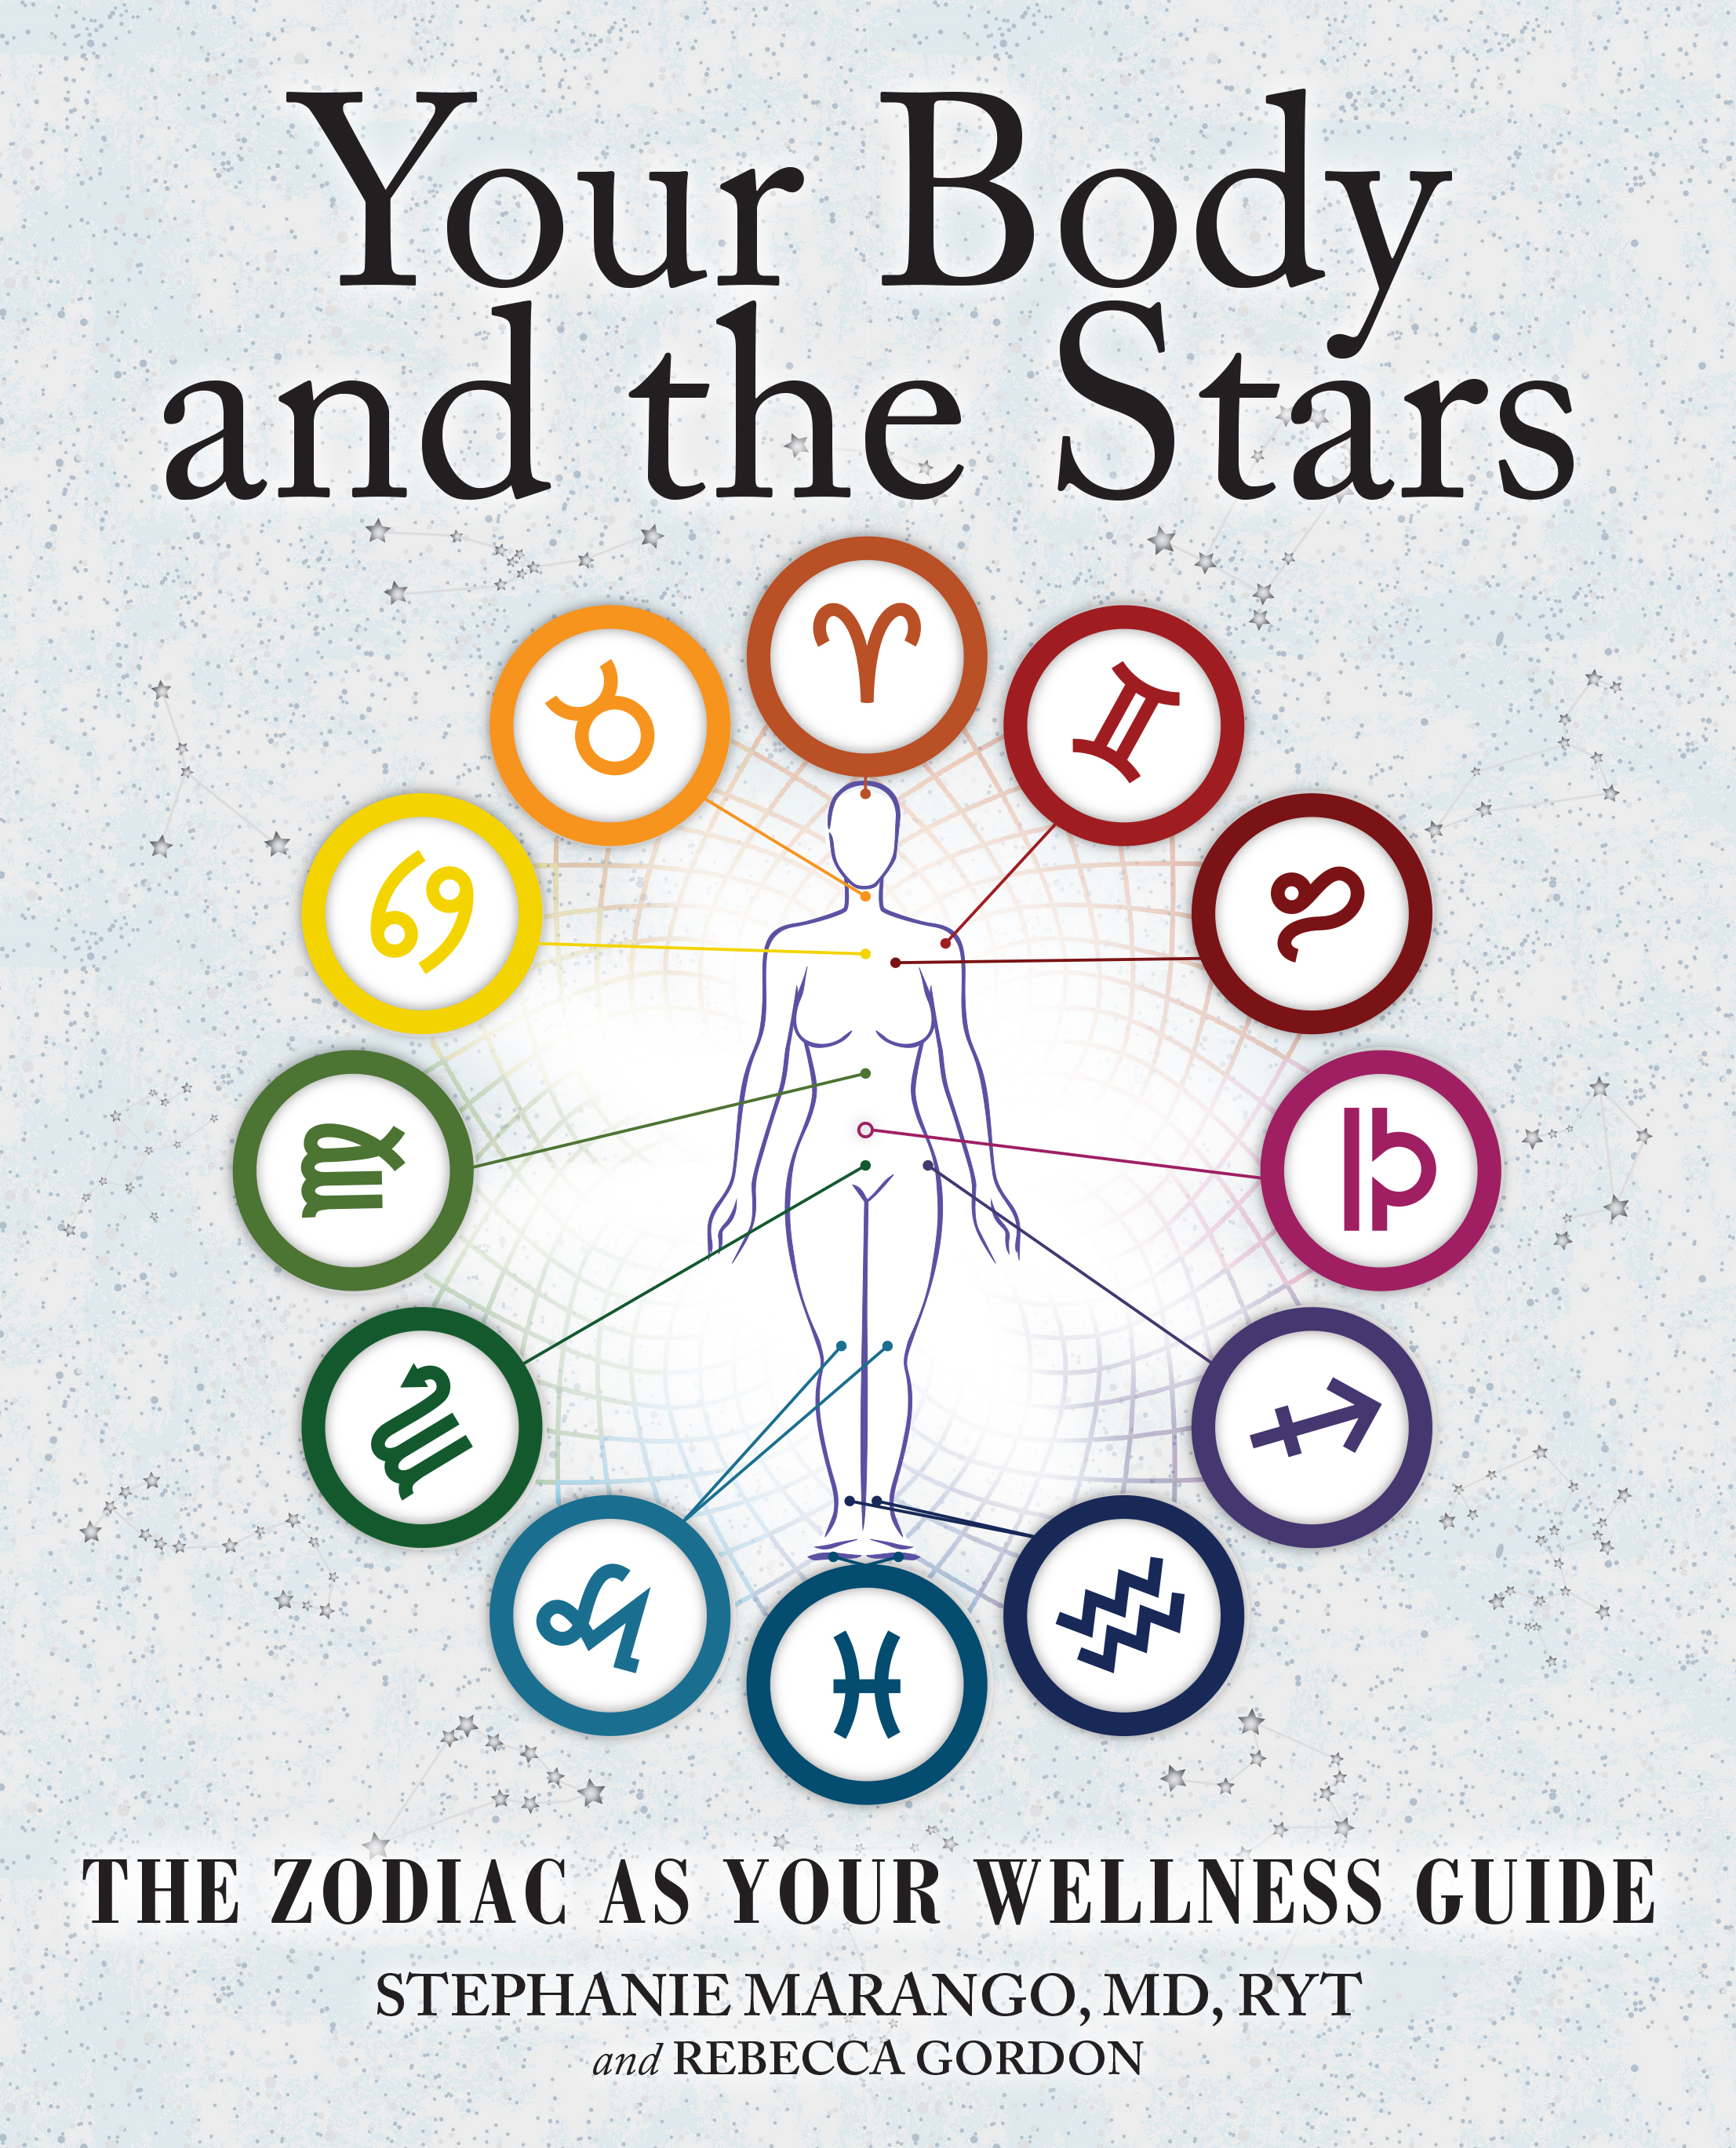 Recommended Course Reading - Along with co-author Stephanie Marango MD, I published this book on Simon and Schuster in 2016. It serves as a body scan and explores the connection between our physical form along with emotions, psyche and spirit. It is full of practical tools and assessments. We hope you enjoy!